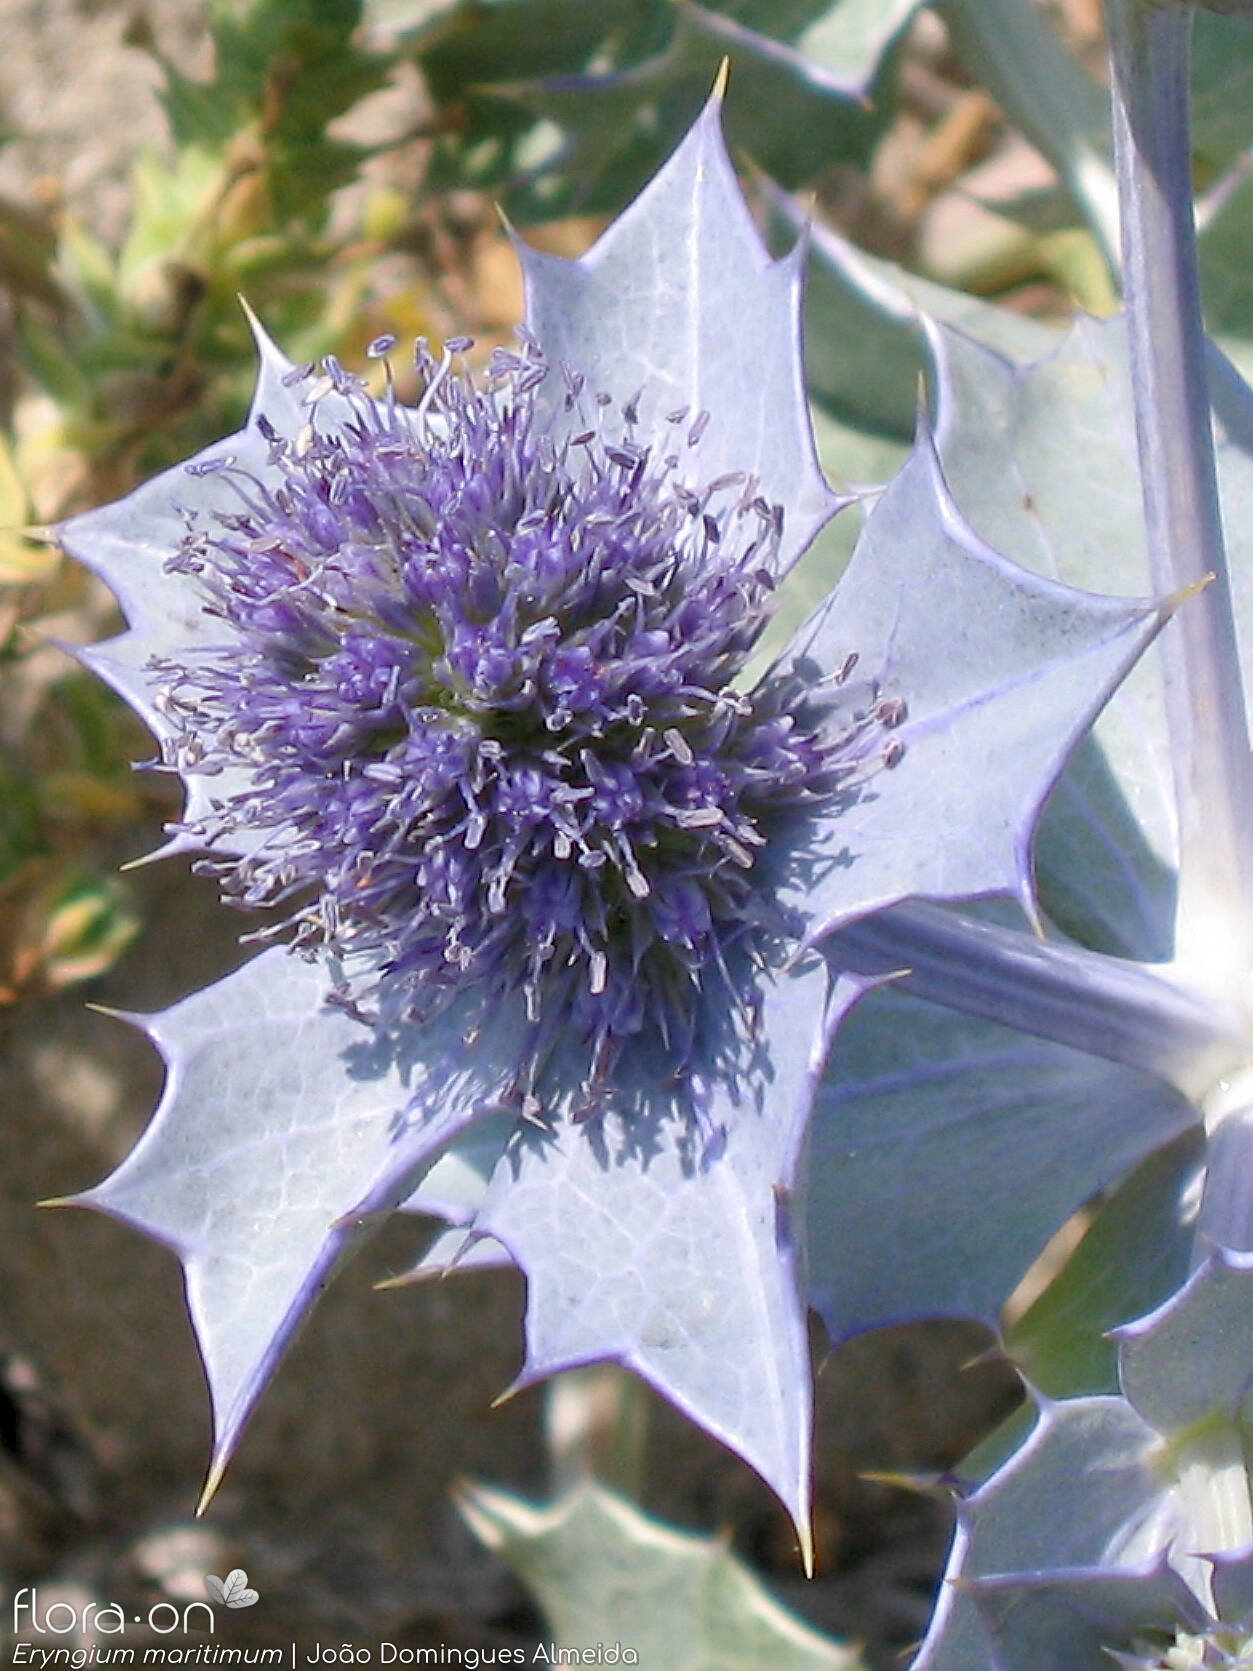 Eryngium maritimum - Flor (close-up) | João D. Almeida; CC BY-NC 4.0